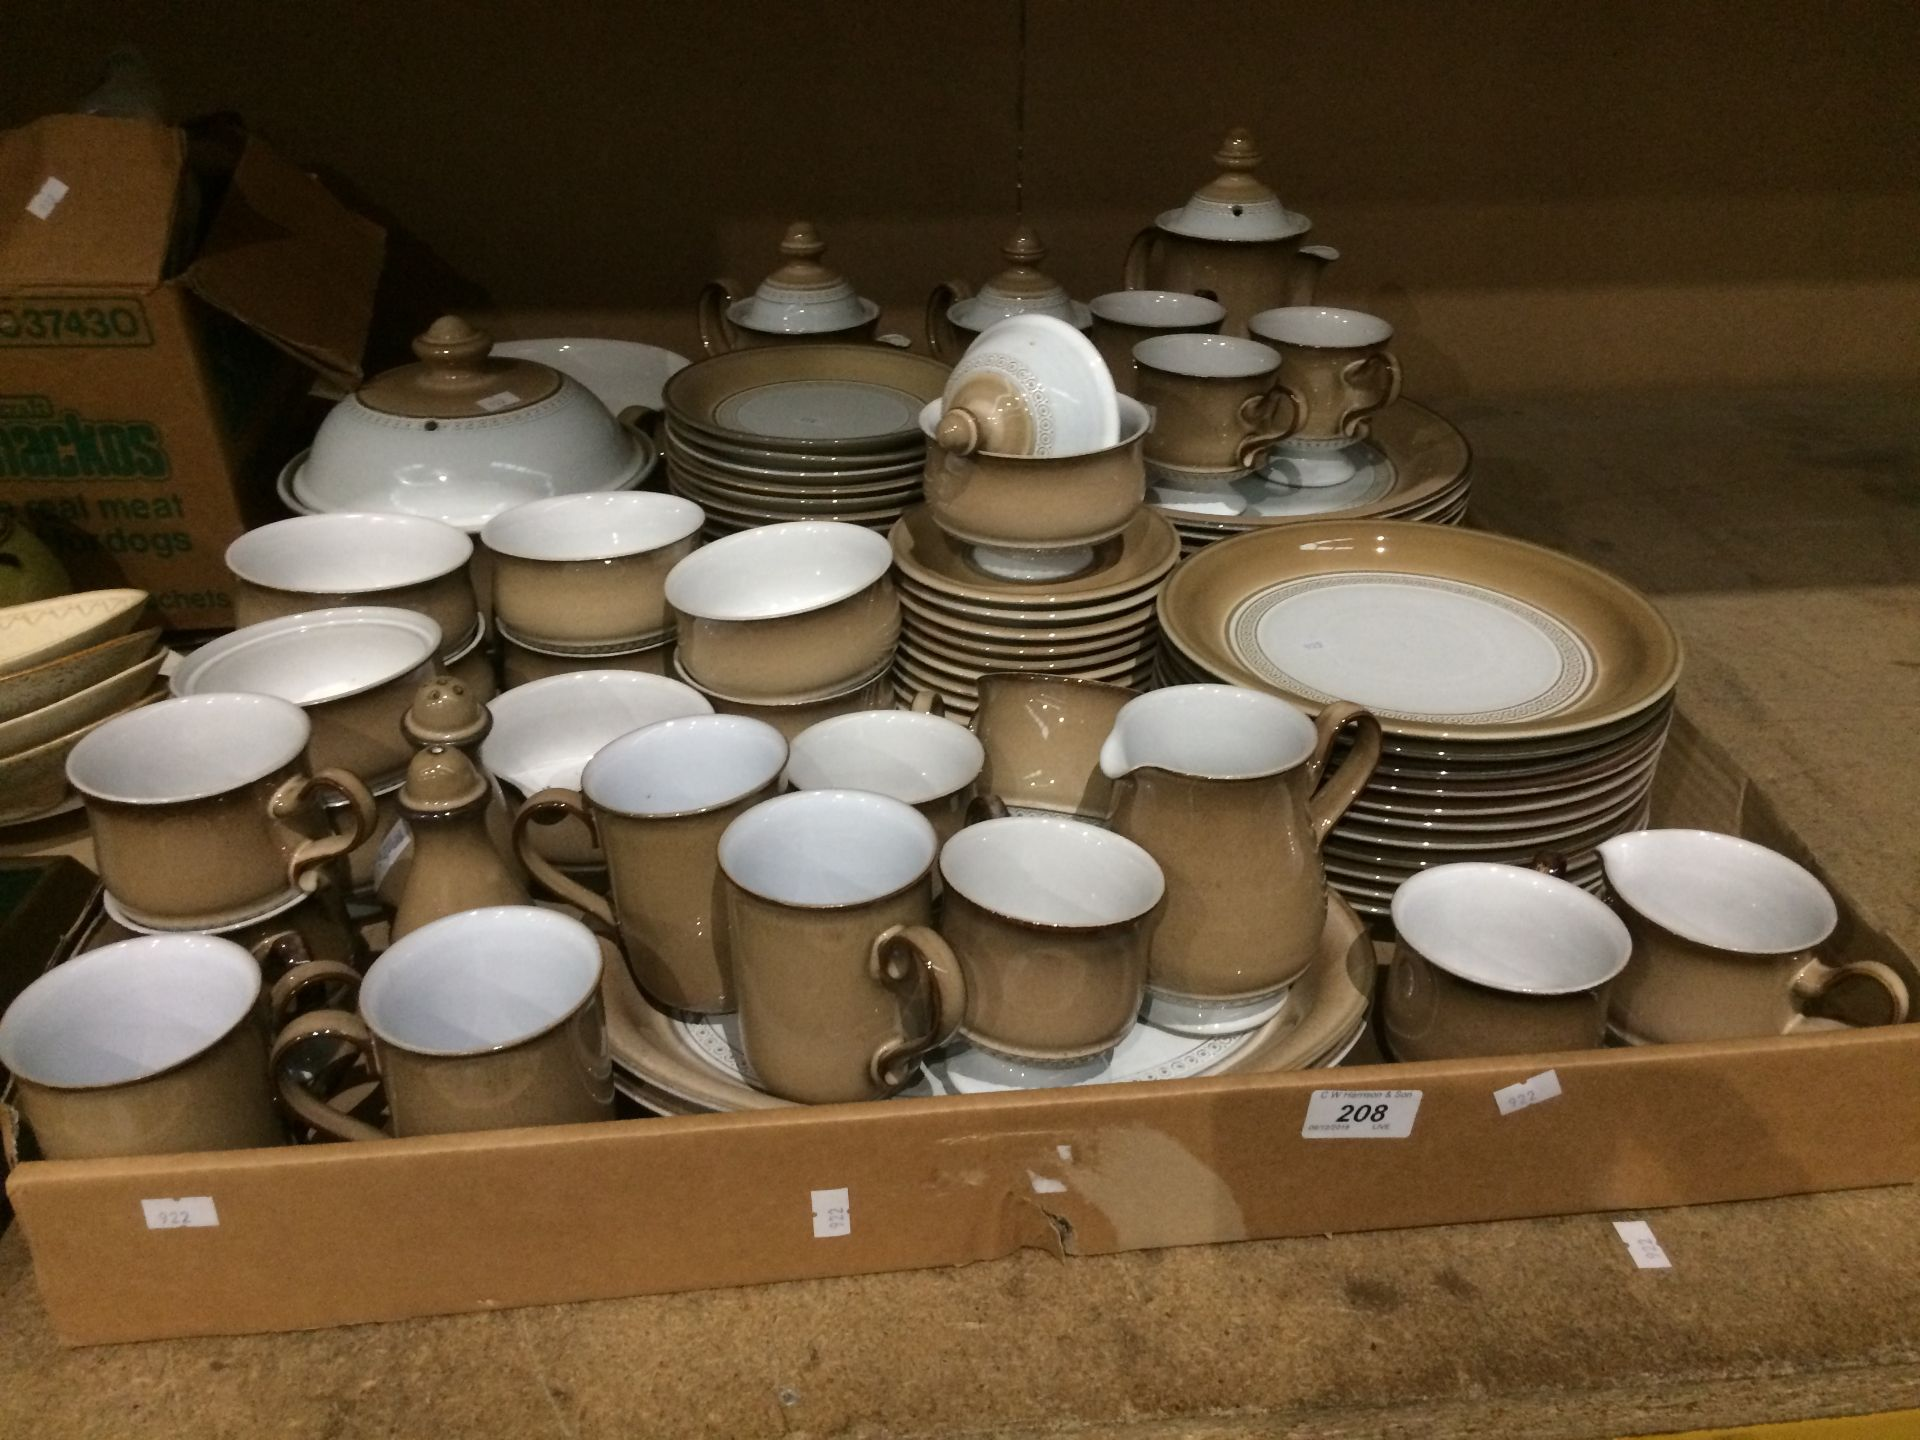 Lot 208 - An extensive part dinner service by Denby light brown and white glazed dinner service - coffee pots,